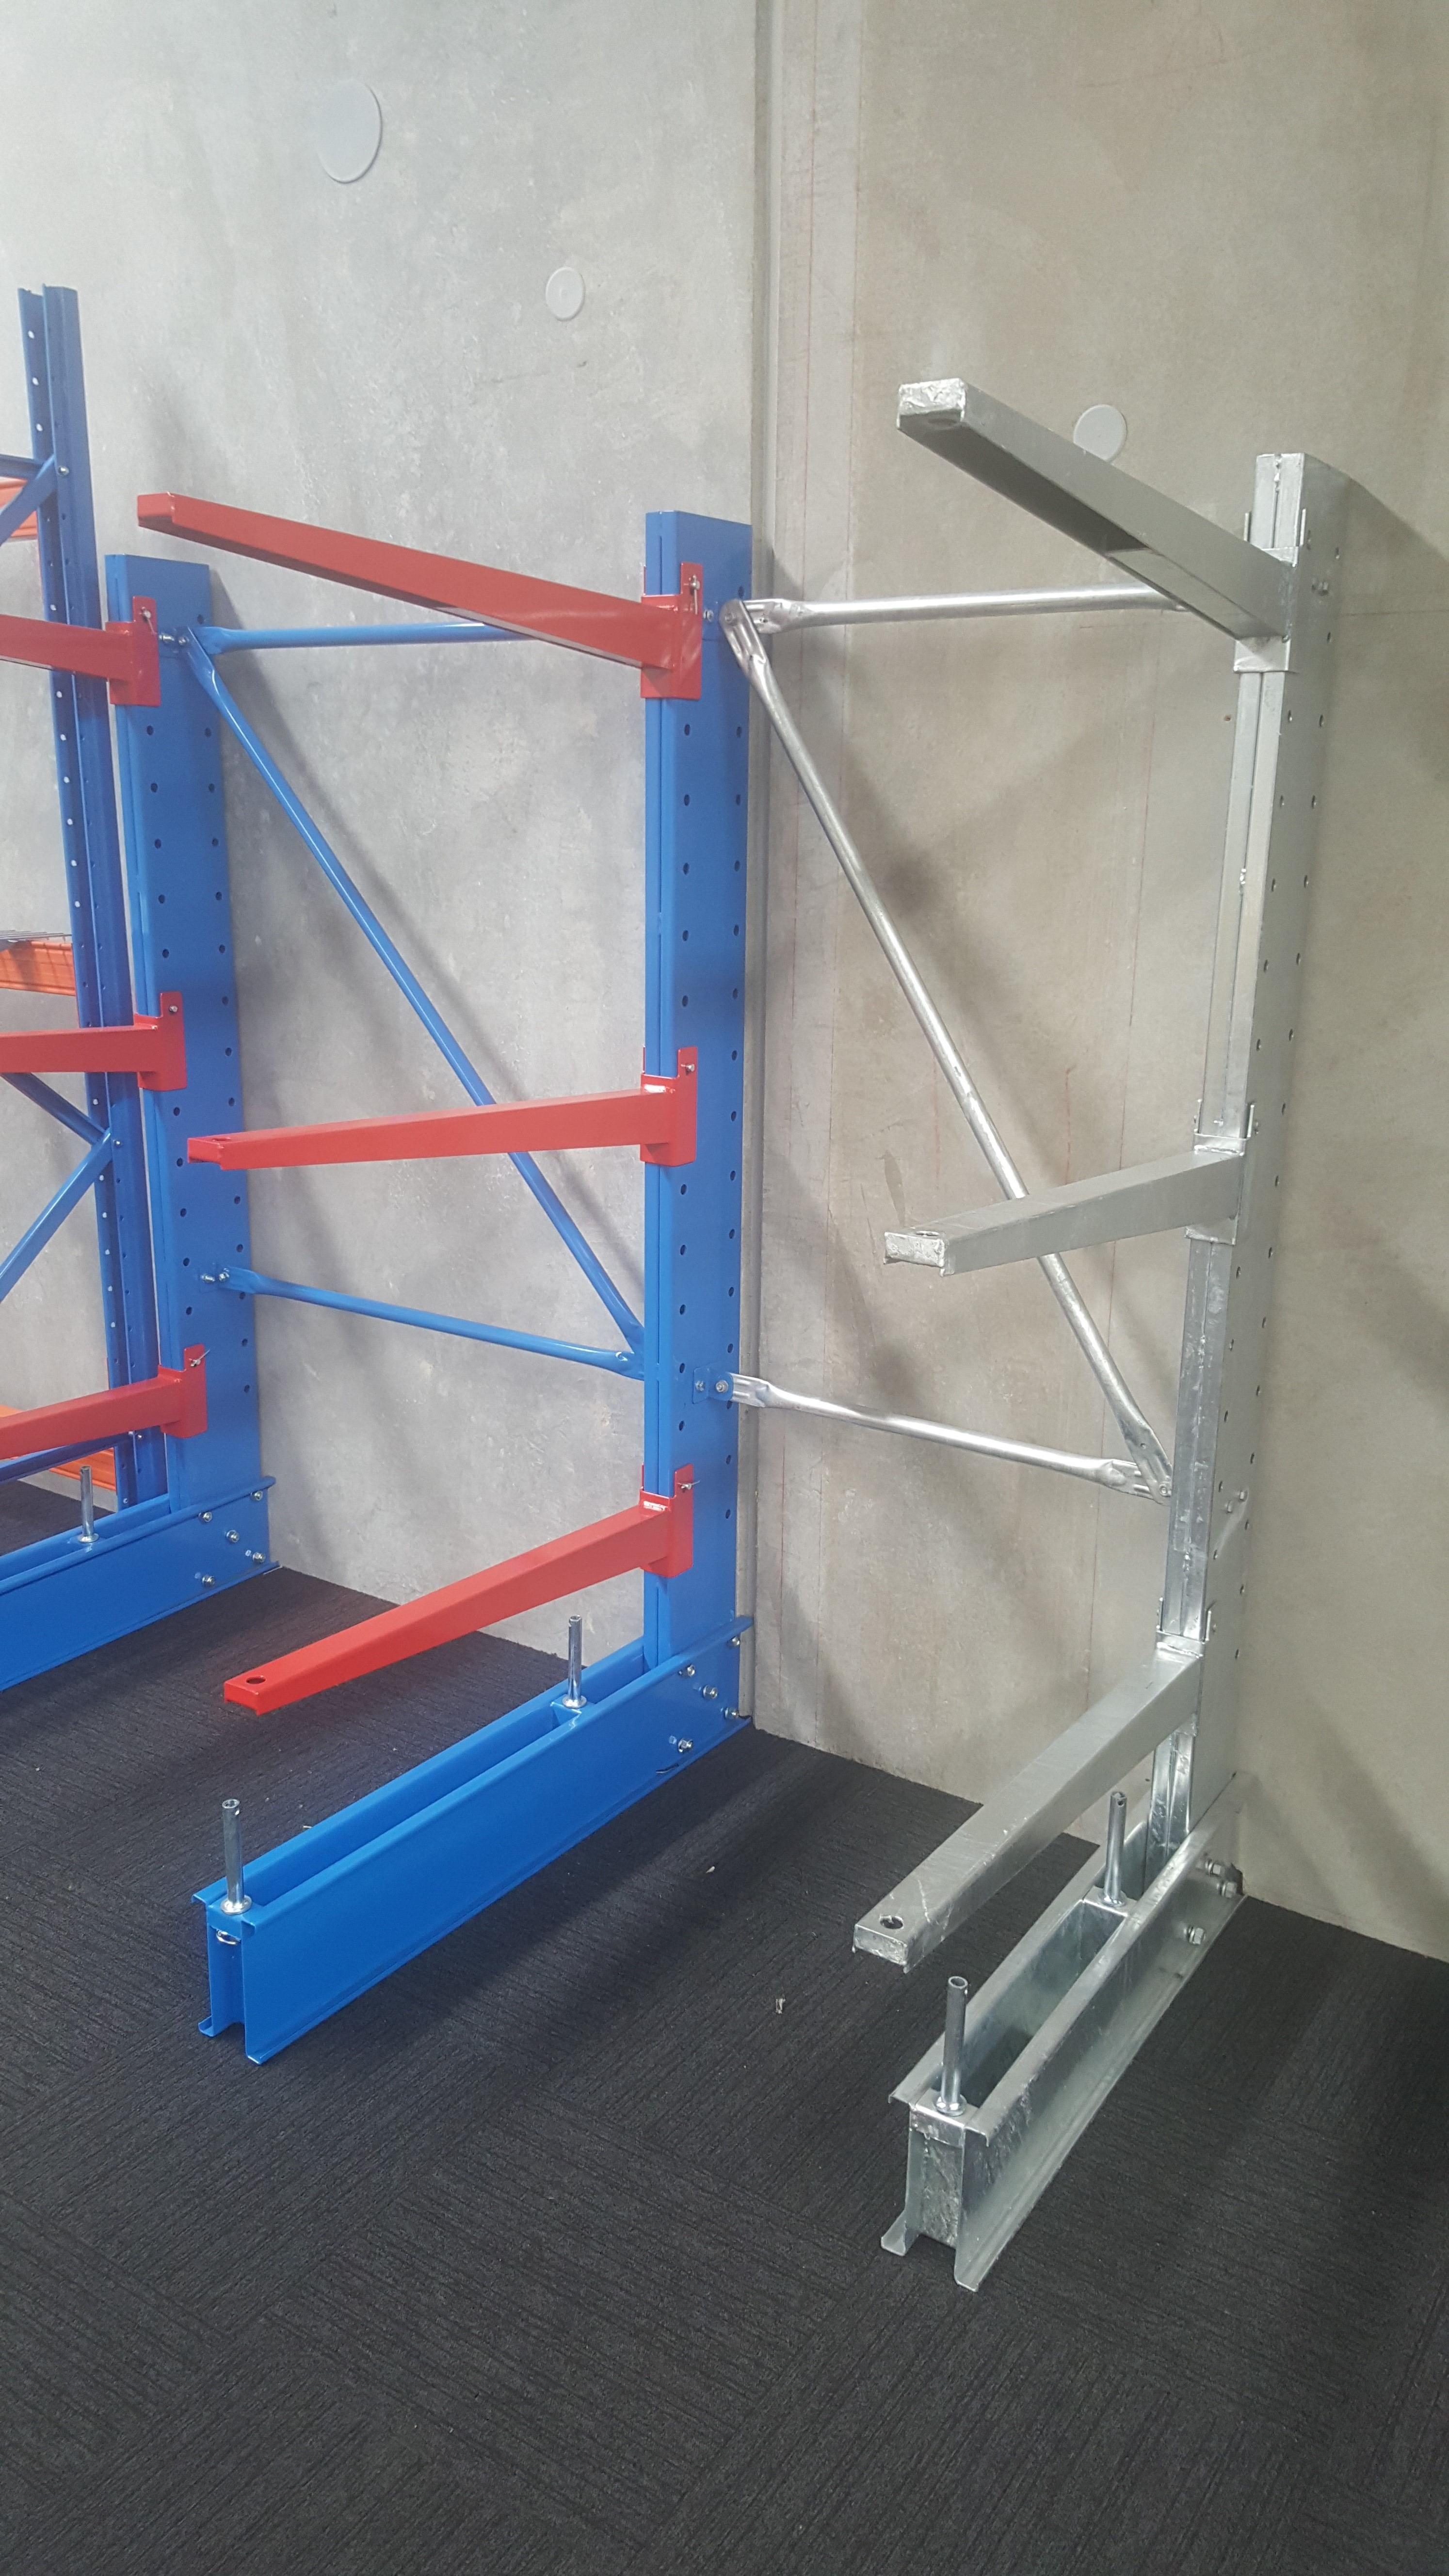 verticle goods shelf with blue and red and unpainted colour